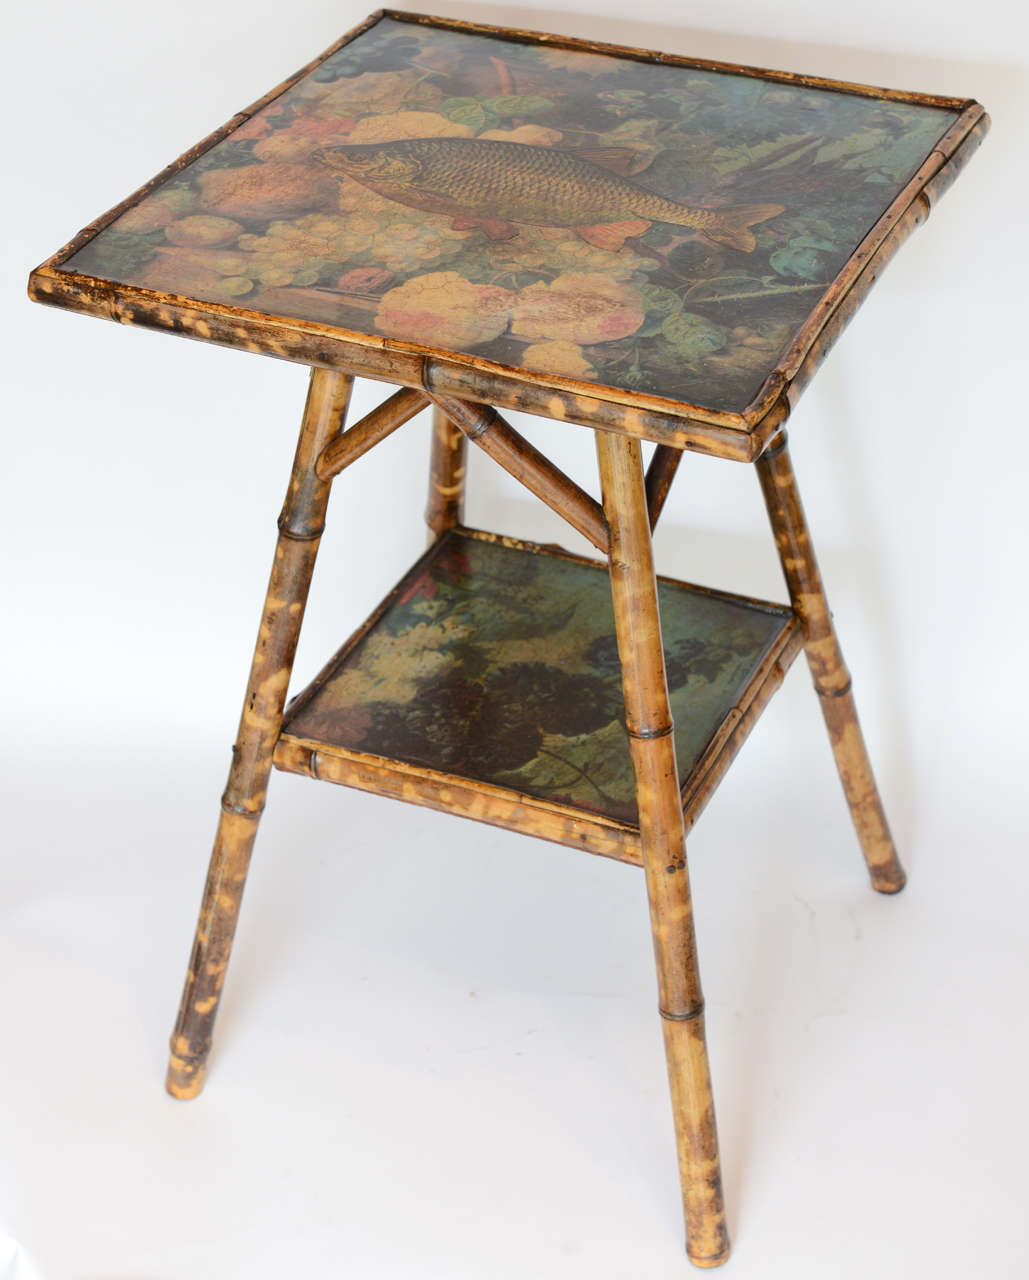 Bamboo Table With Design: Antique Two-Tier Decoupage Bamboo Table For Sale At 1stdibs